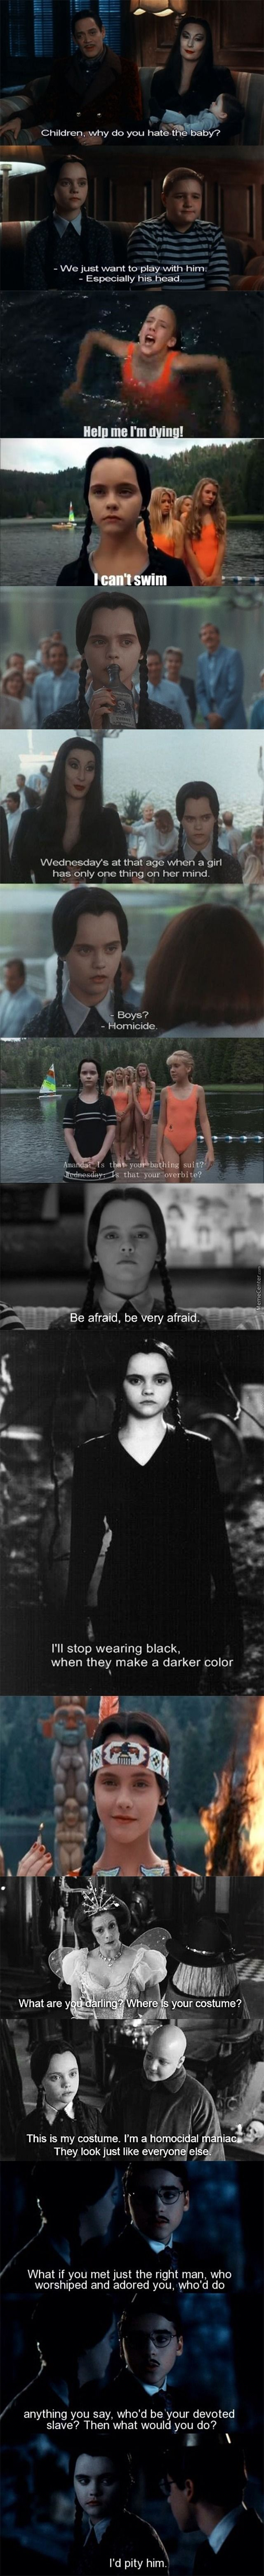 Wednesday Addams is awesome